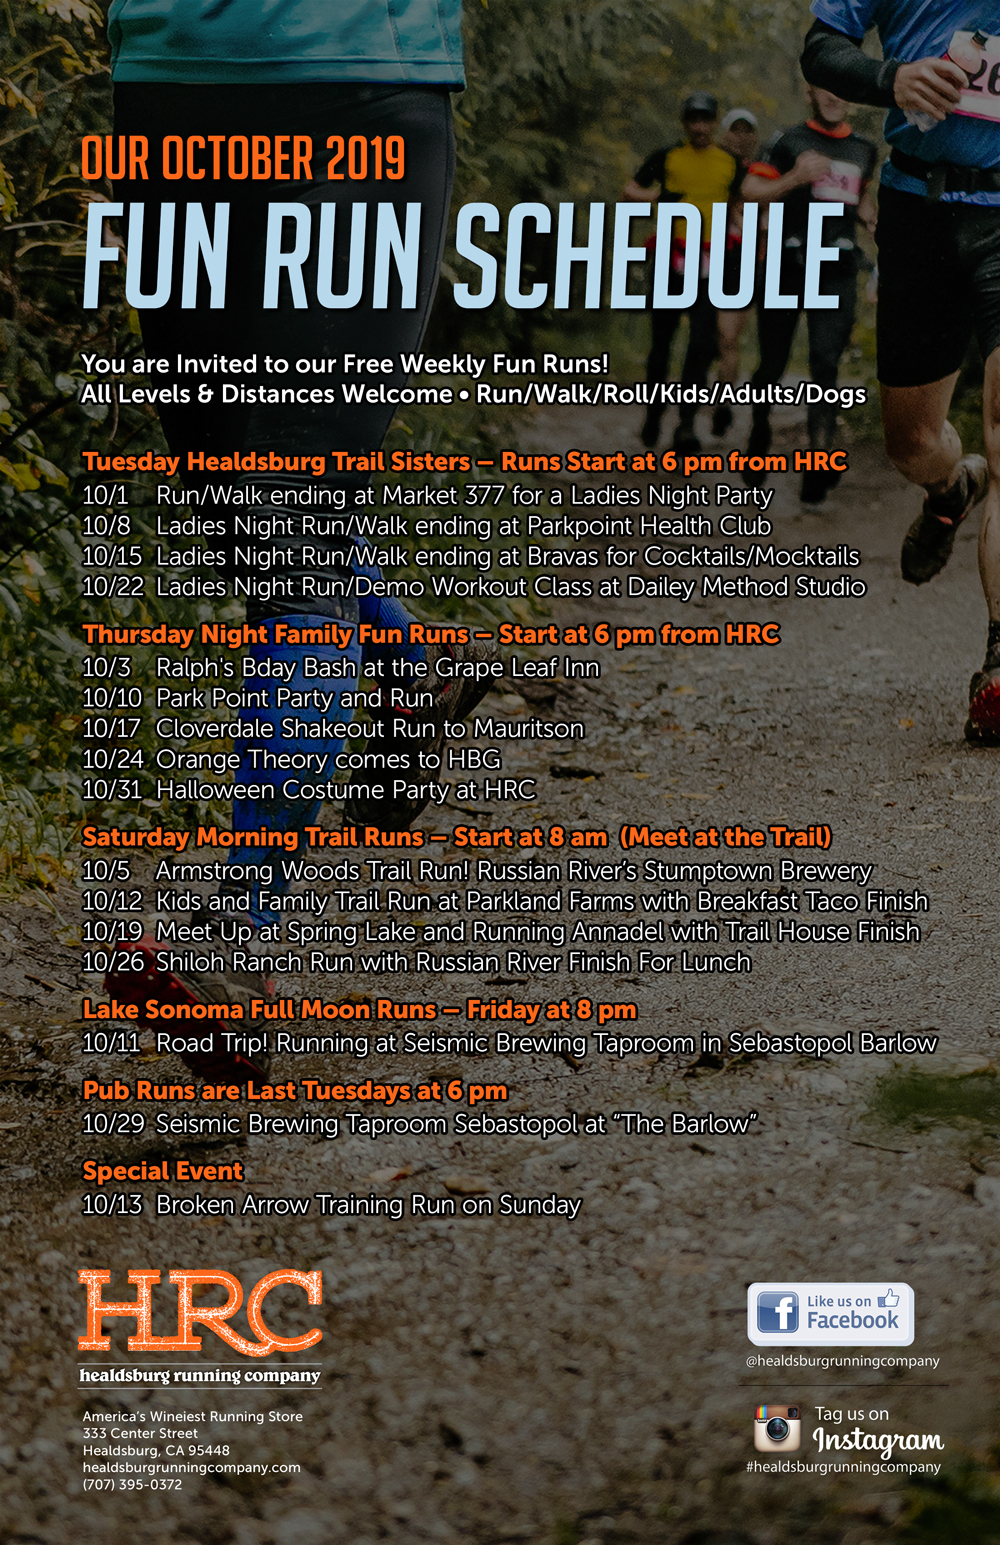 oct 2019 run schedule